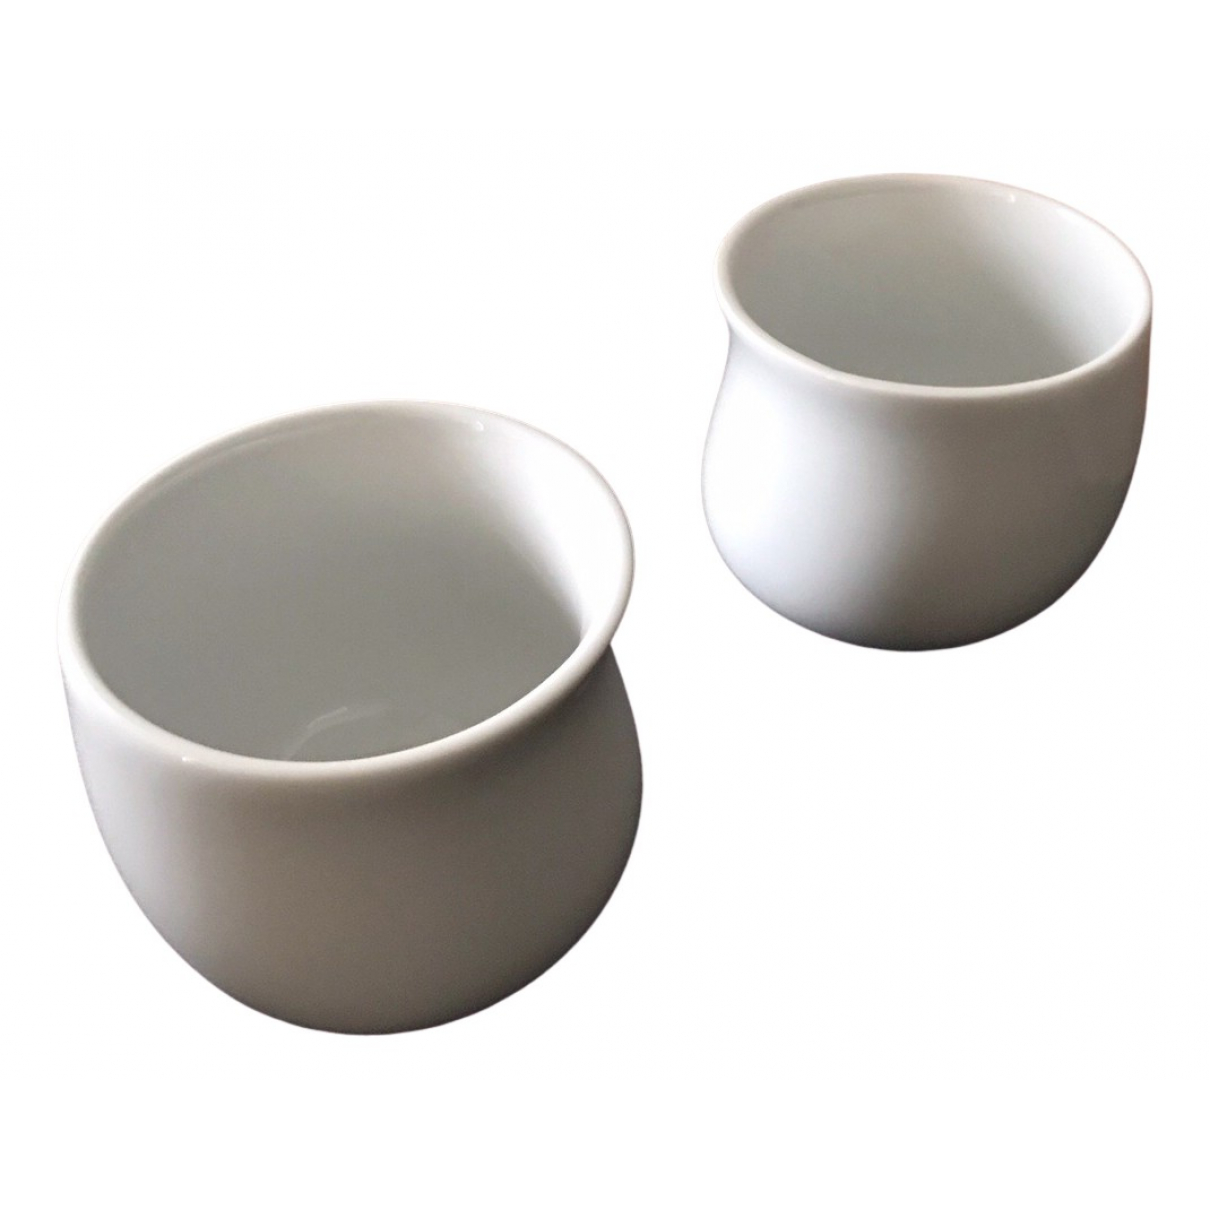 Georg Jensen - Arts de la table   pour lifestyle en porcelaine - blanc